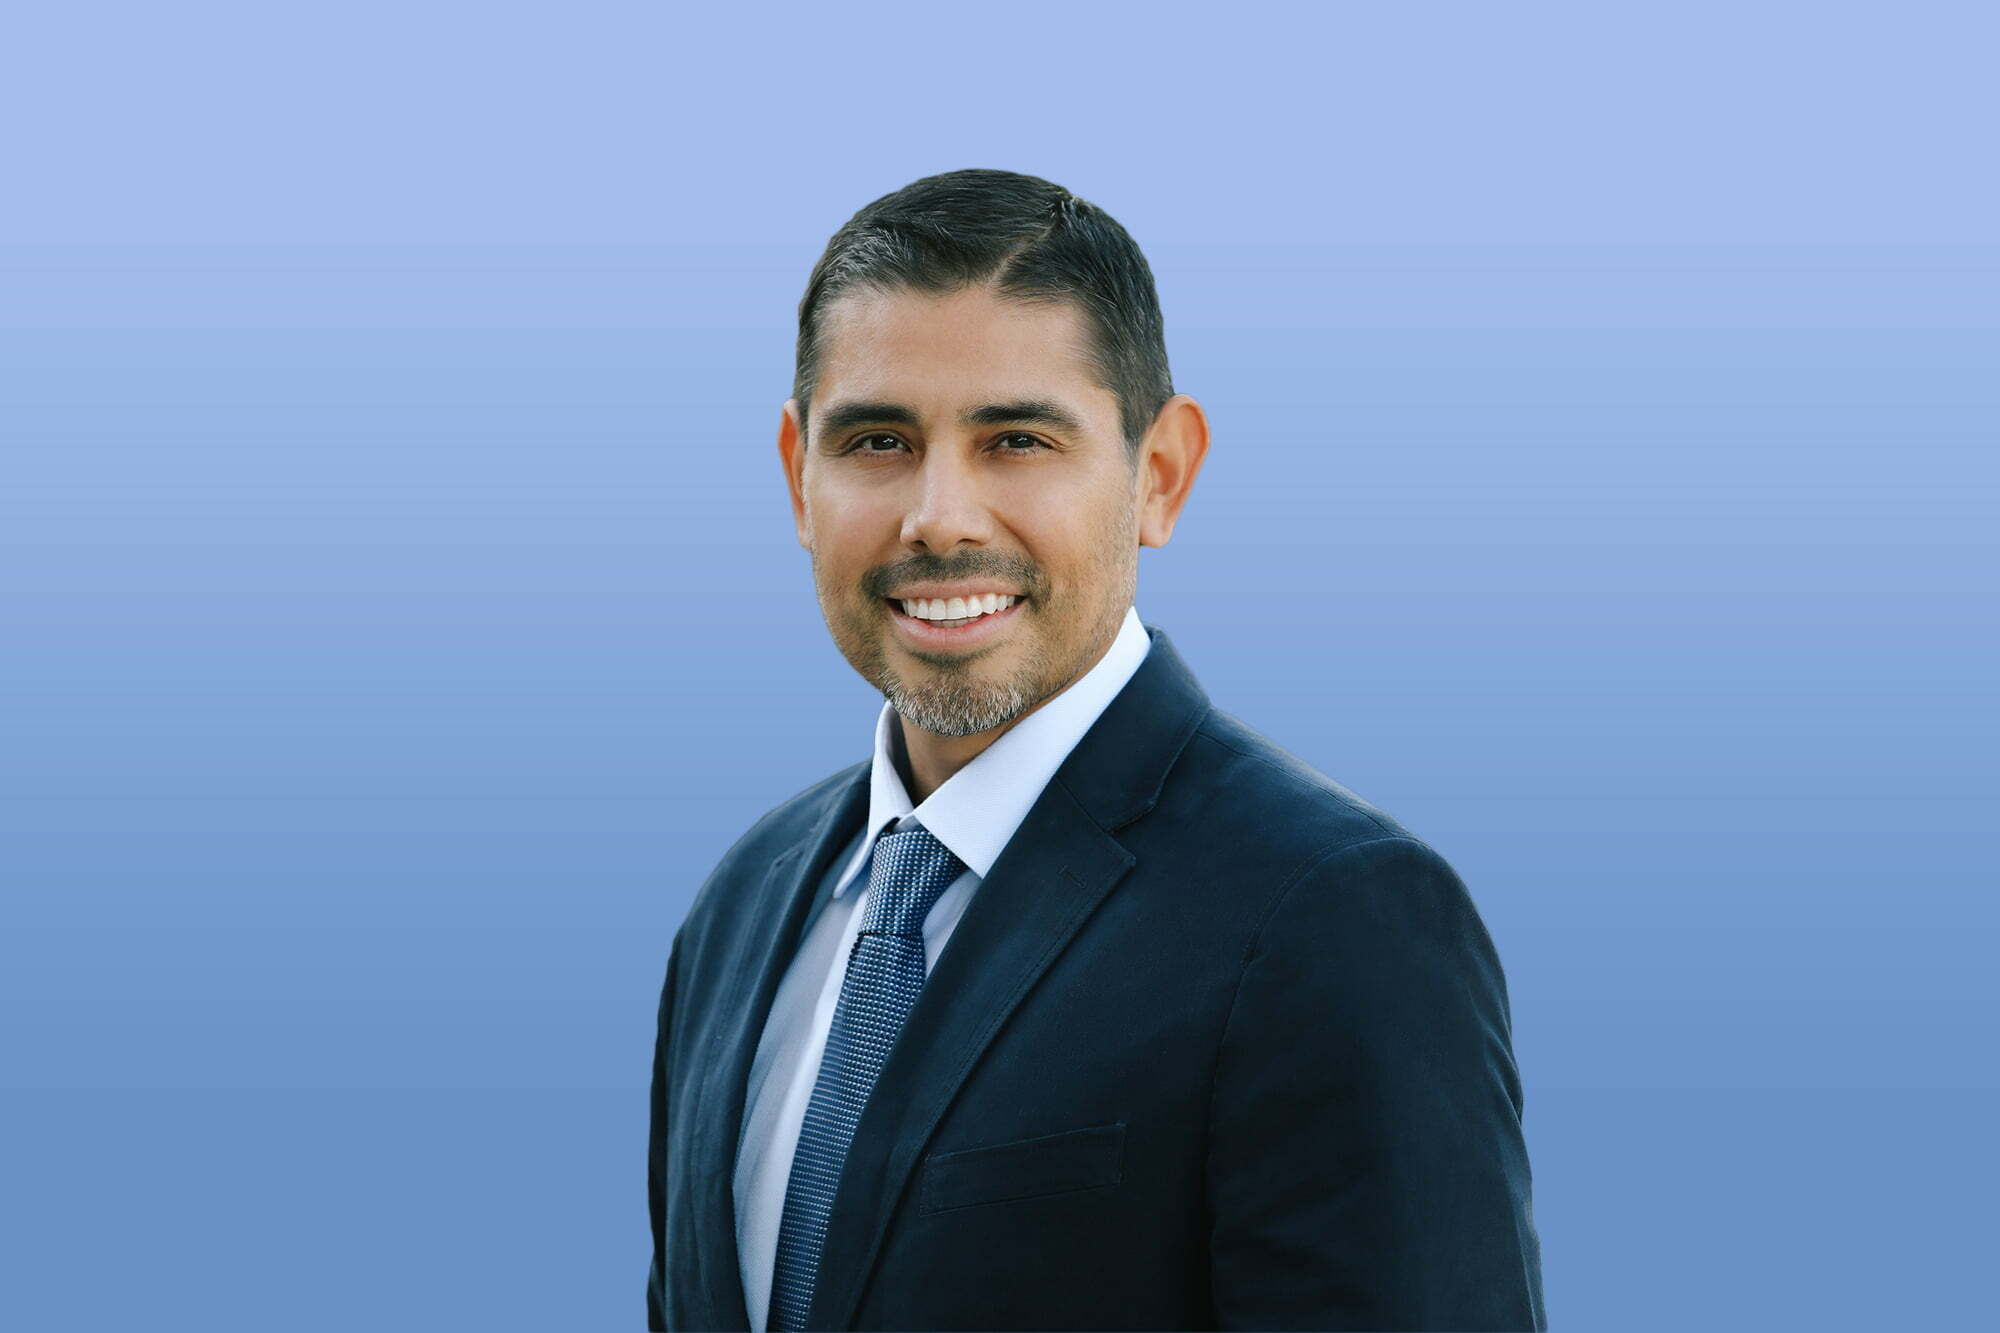 Edward Beltran, CEO of Fierce Conversations